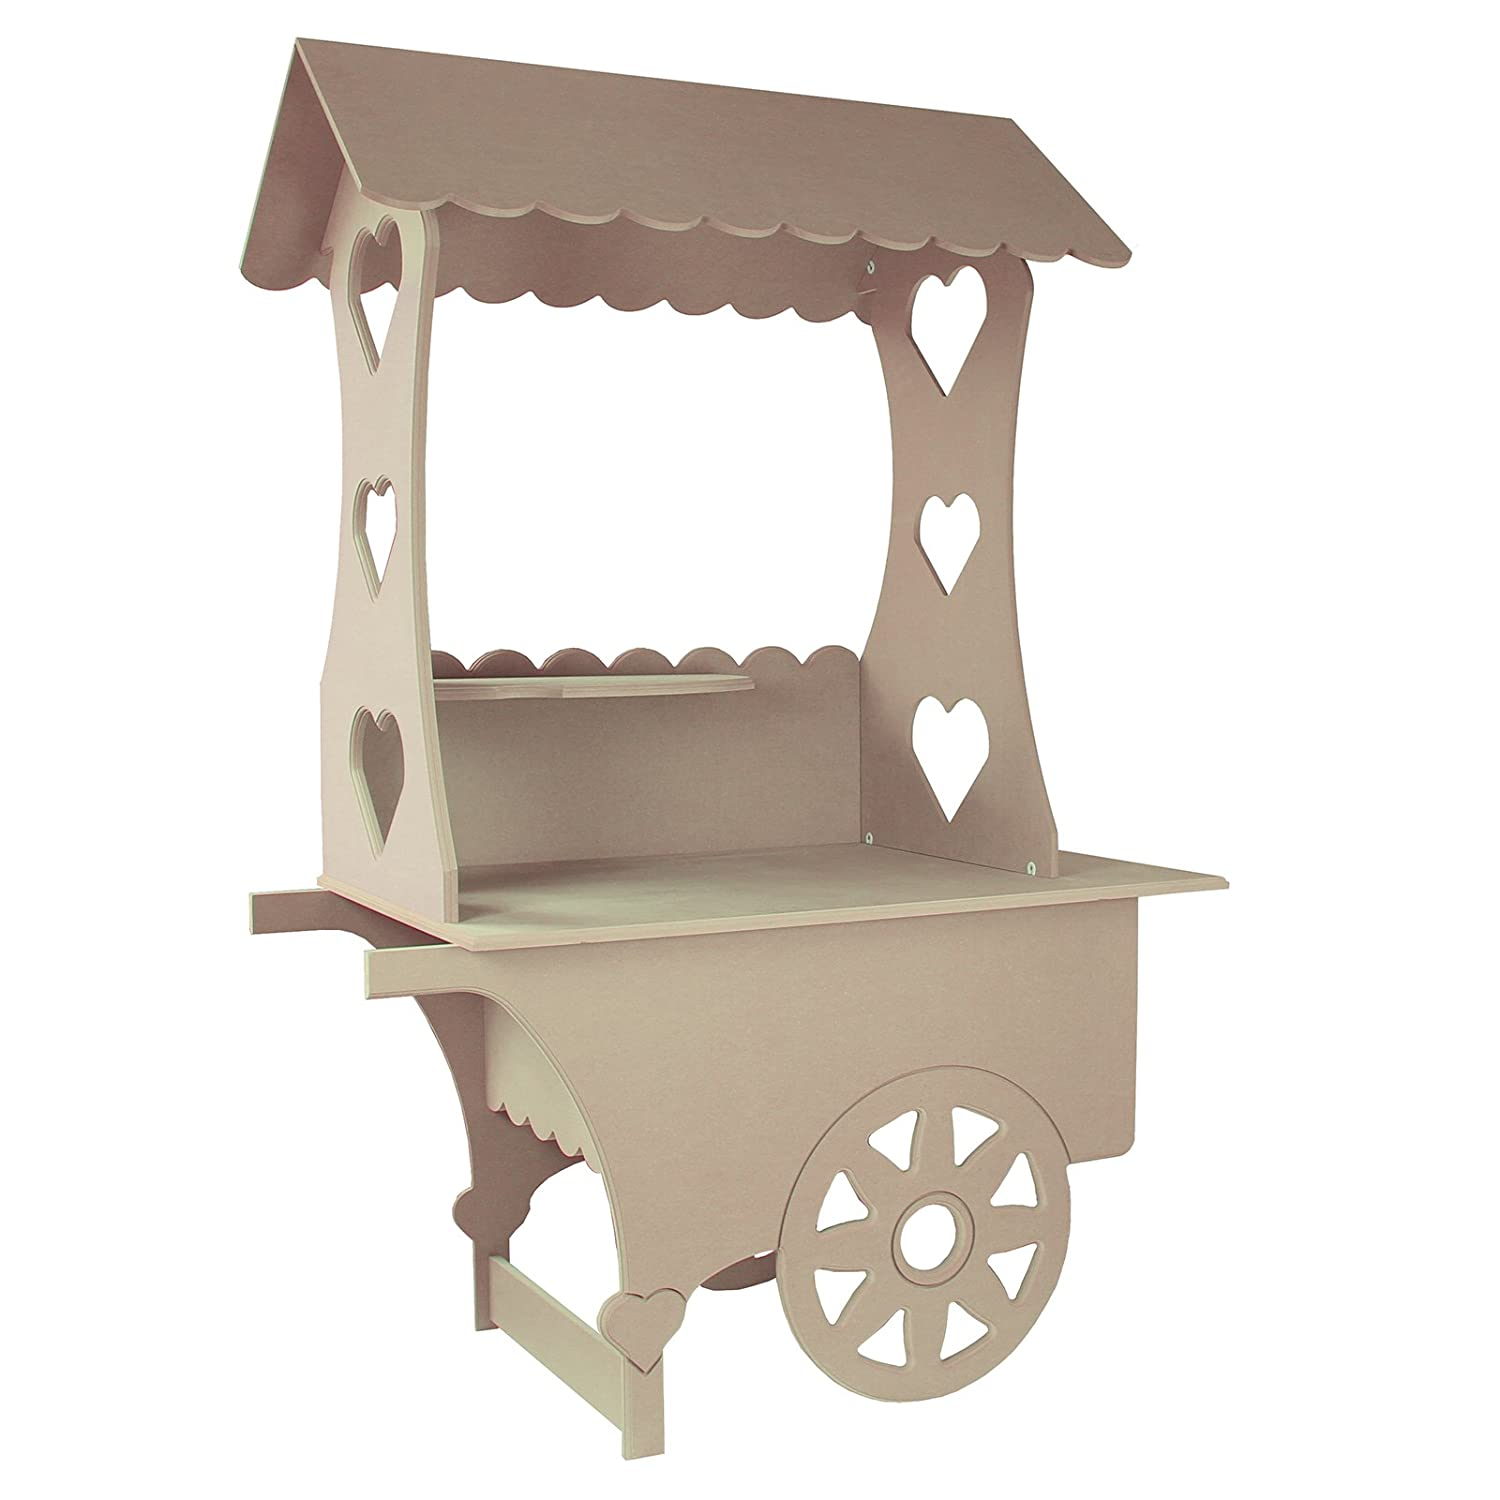 Kukoo Candy Cart Wedding Favours Sweet Stall Birthday Christening Mdf Table Wood Stand